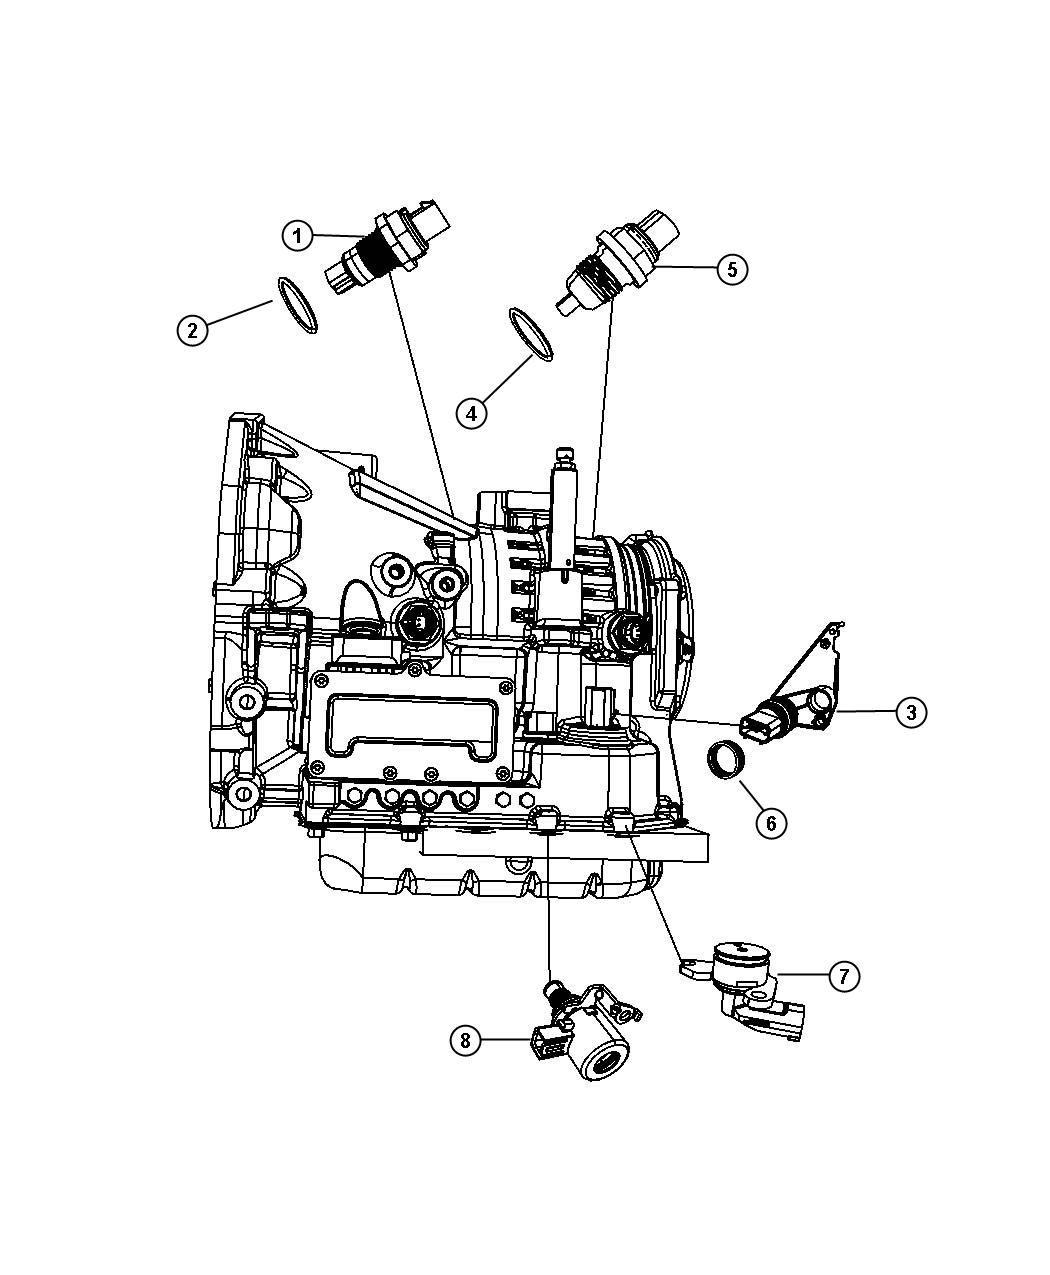 Chrysler Sebring Sensor Solenoid Trans Variable Force